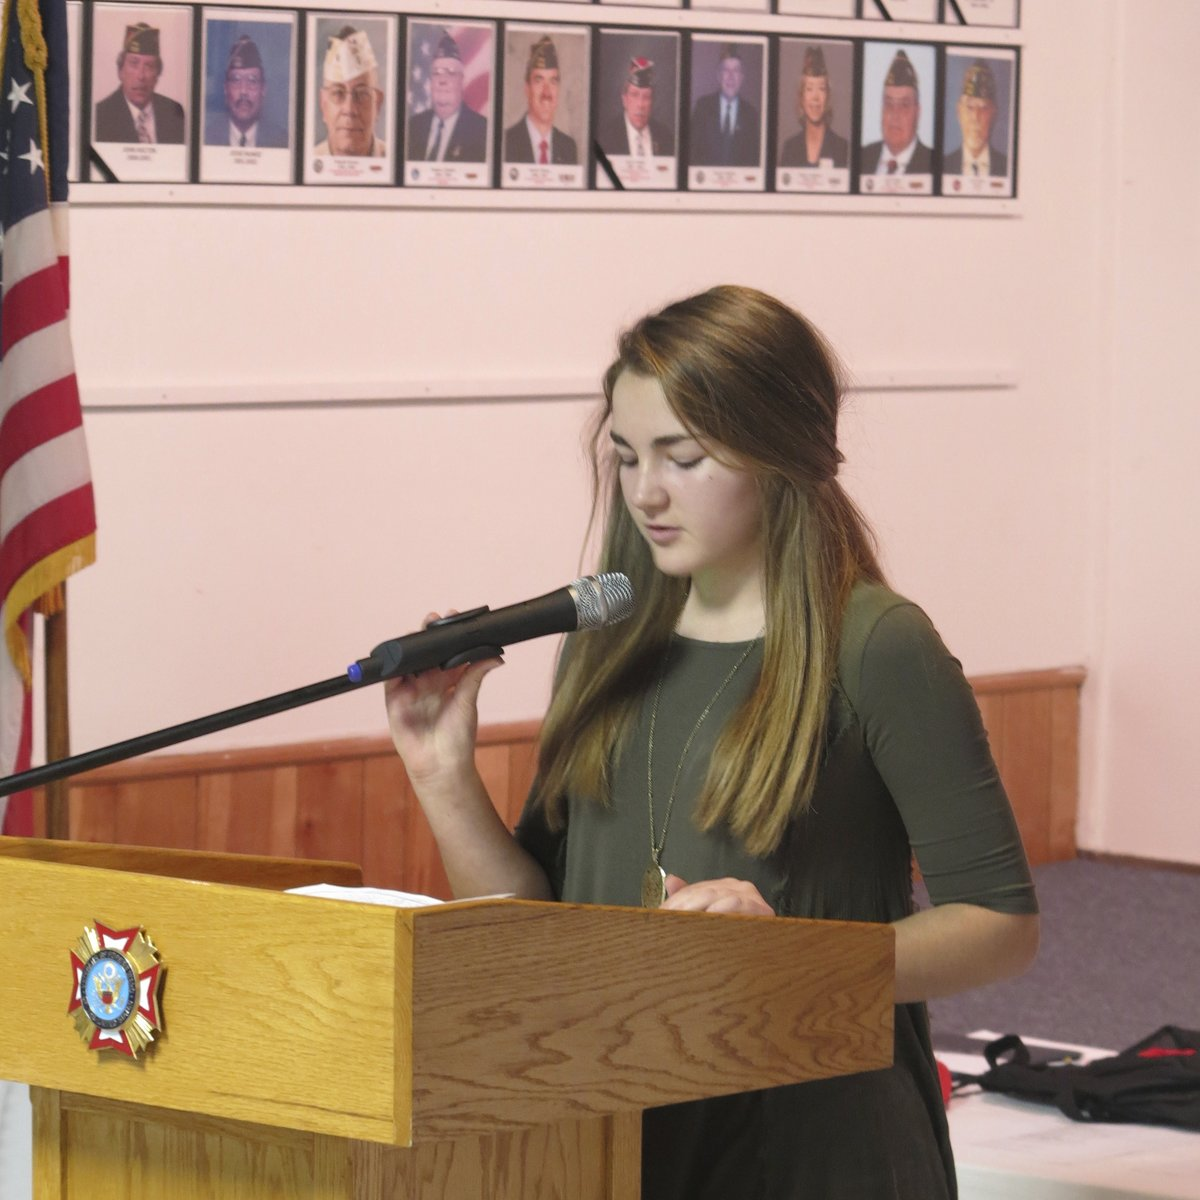 VFW Honors Patriotic Children with Over $2,000 in Scholarships 8